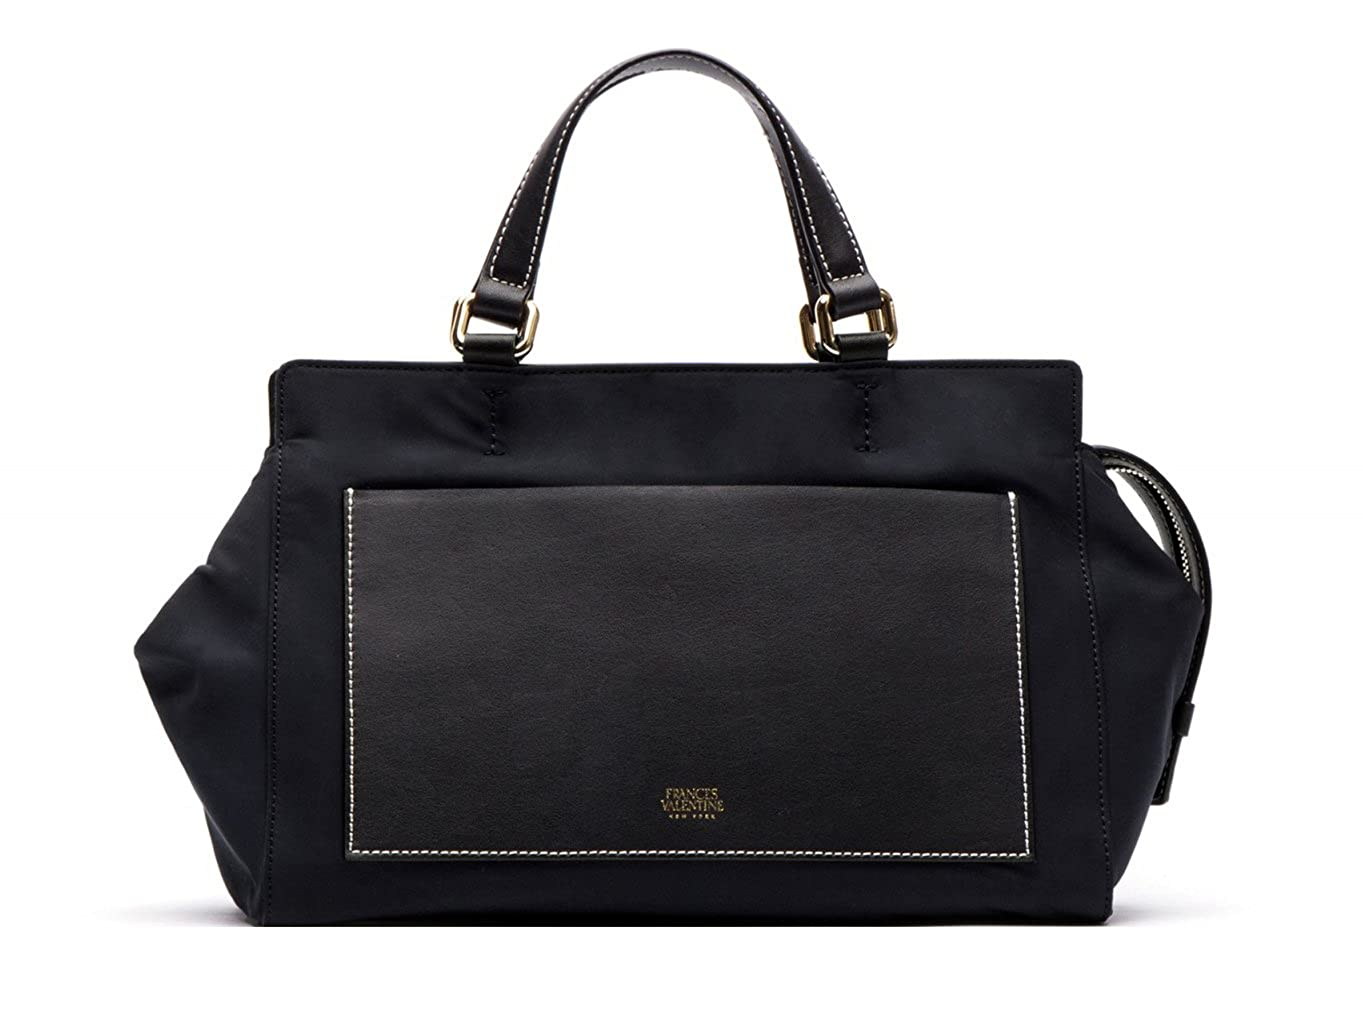 58 Bag Navy Tassel Zip Tote Black 47 Off: Handbags & Wallets : Online Shopping For Clothing, Shoes